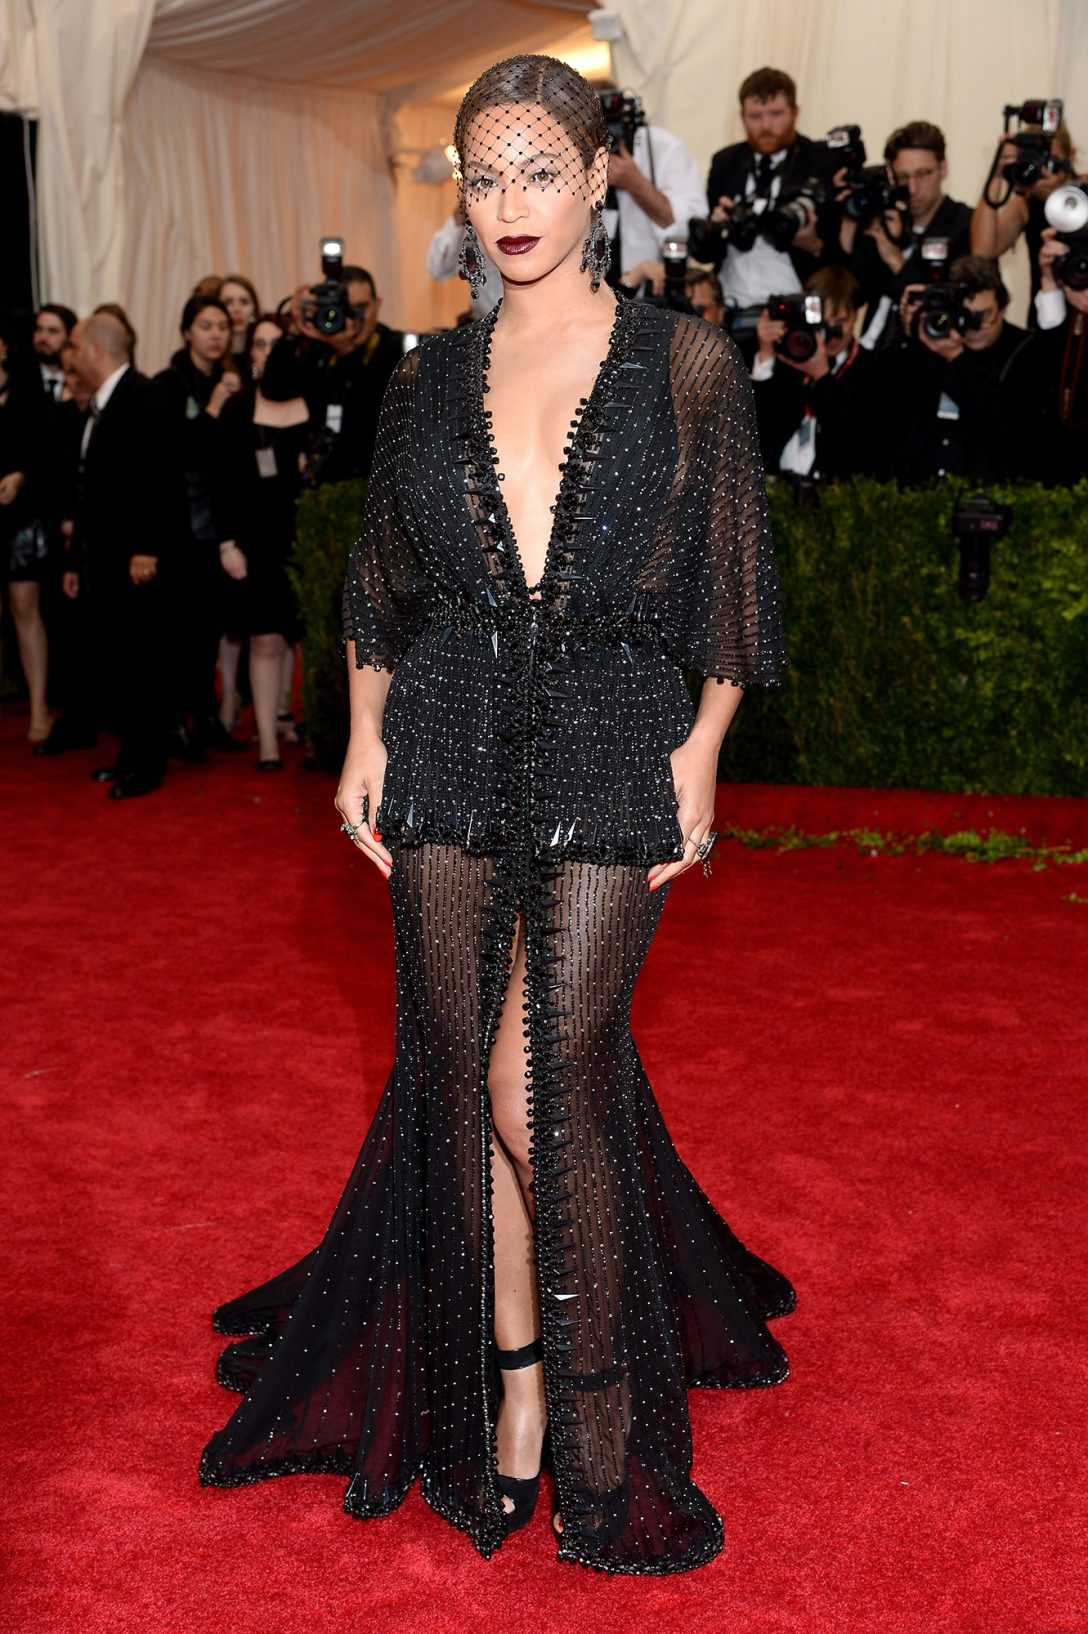 Beyoncé in Givenchy Haute Couture 2014